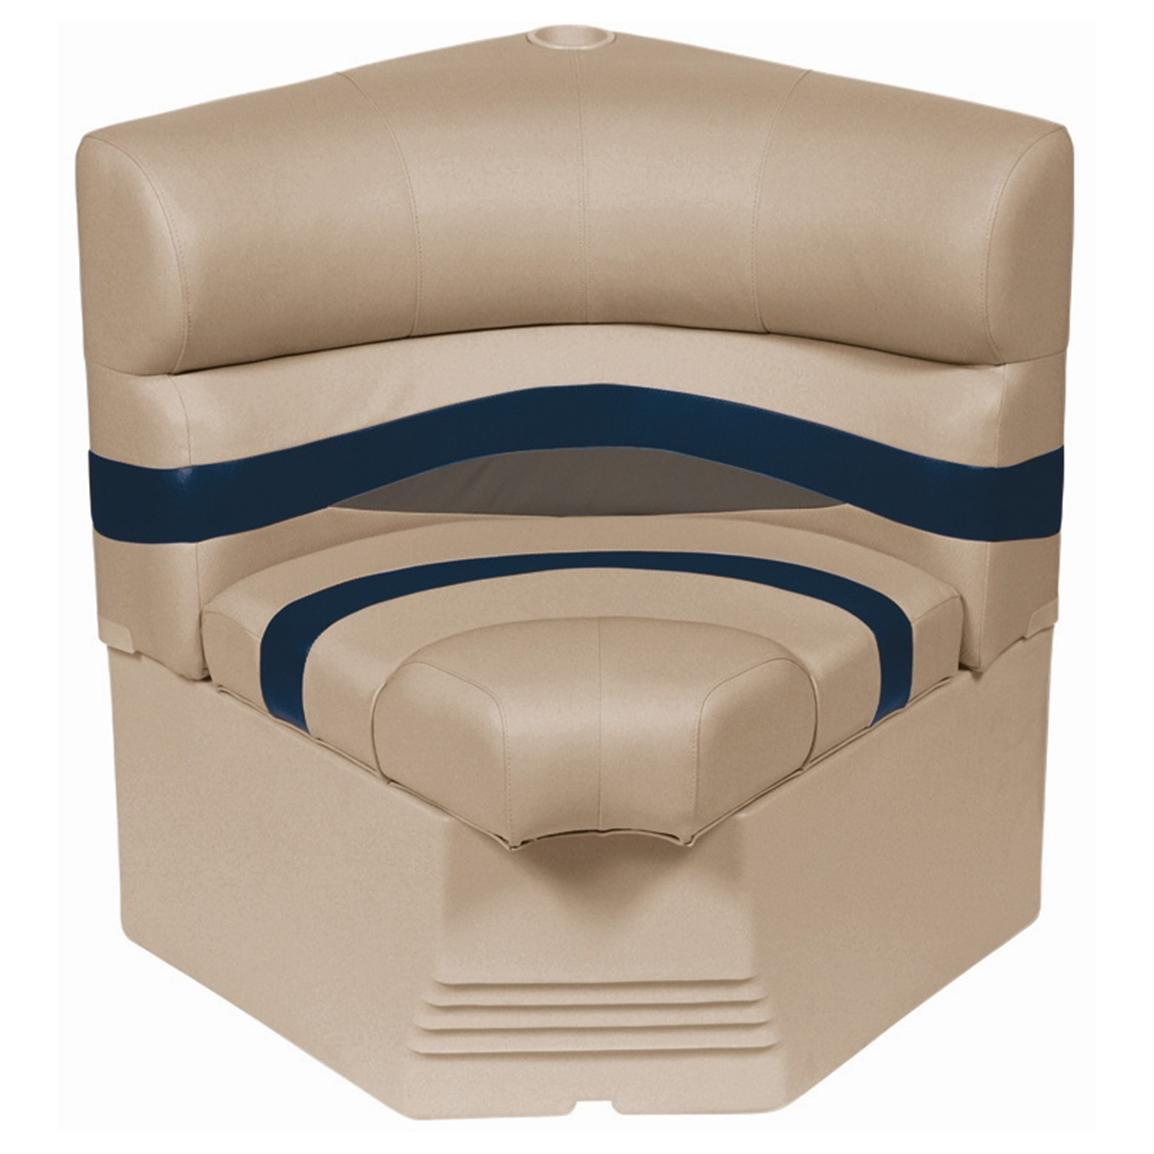 "Wise® Premier Pontoon 25"" Radius Corner Section Seat • Color D - Mocha Java Punch / Midnight / Rock Salt"